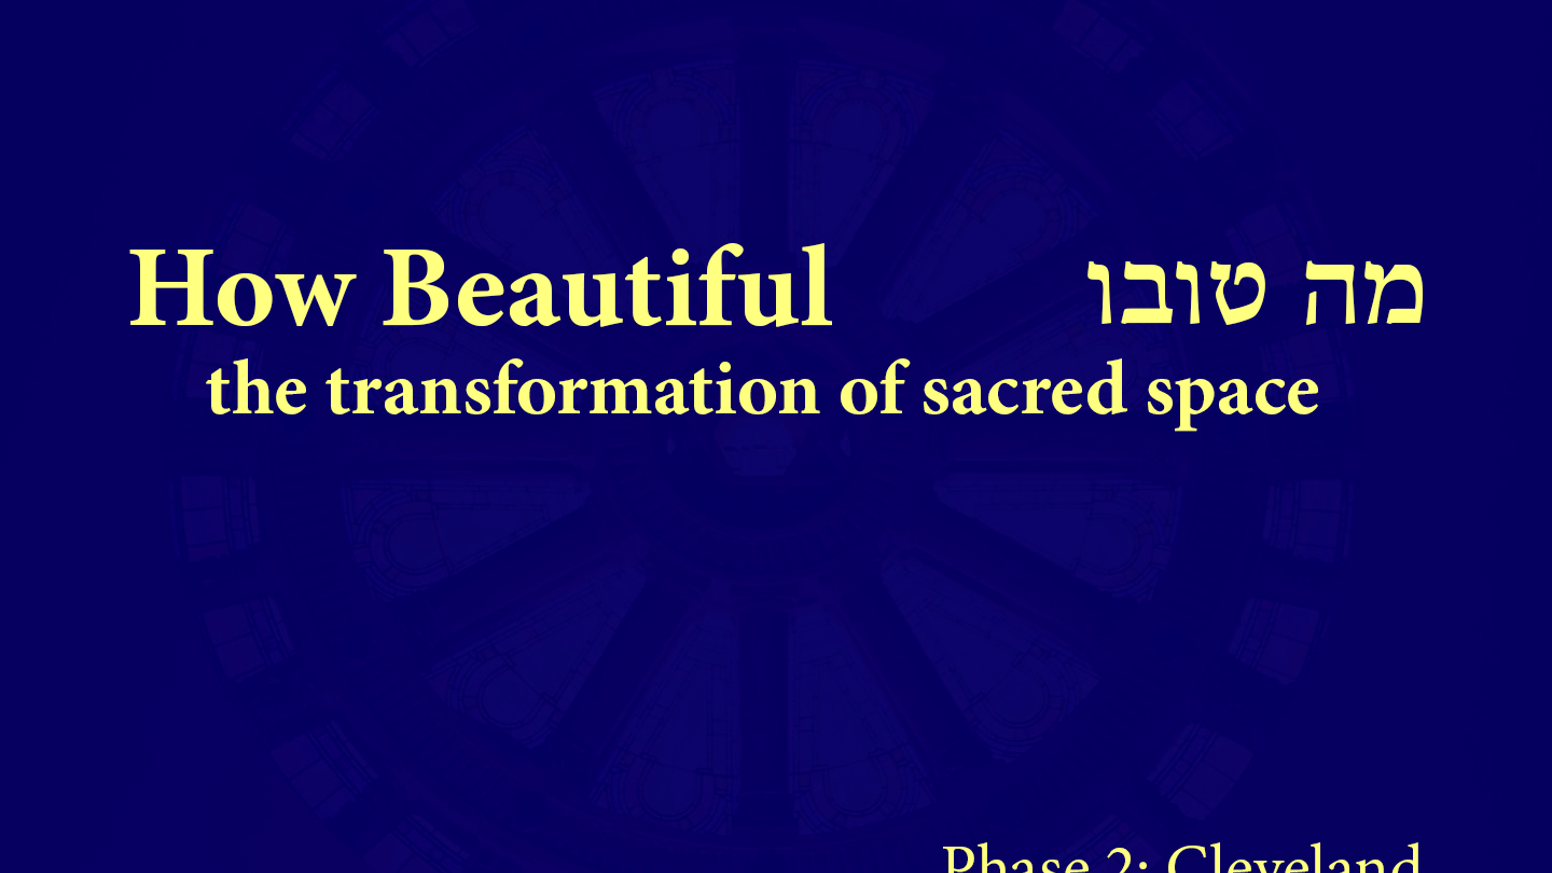 How Beautiful: the Transformation of Sacred Space (#2: CLE) by